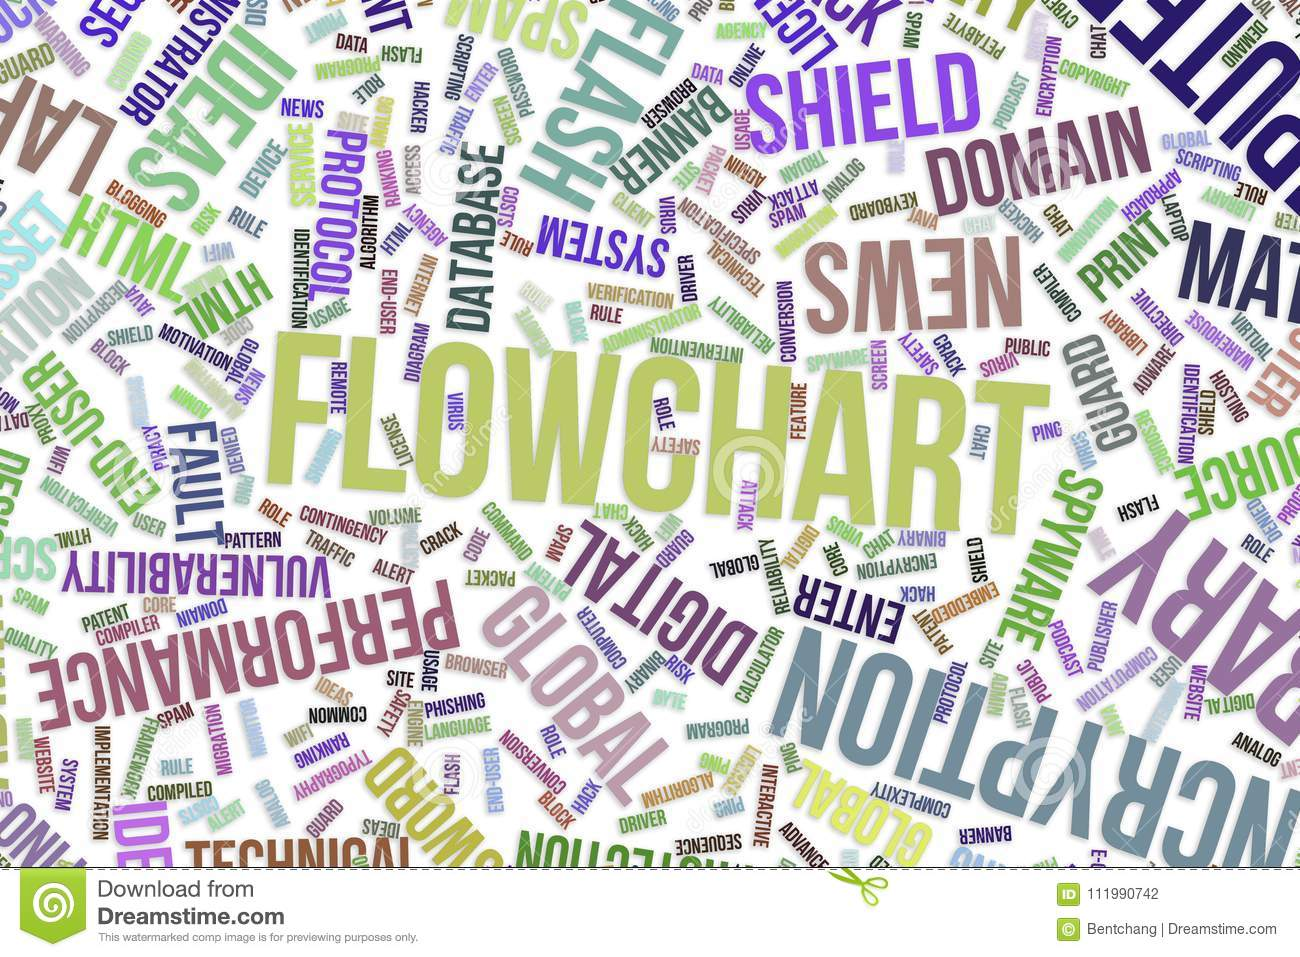 Flowchart, conceptual word cloud for business, information technology or IT.